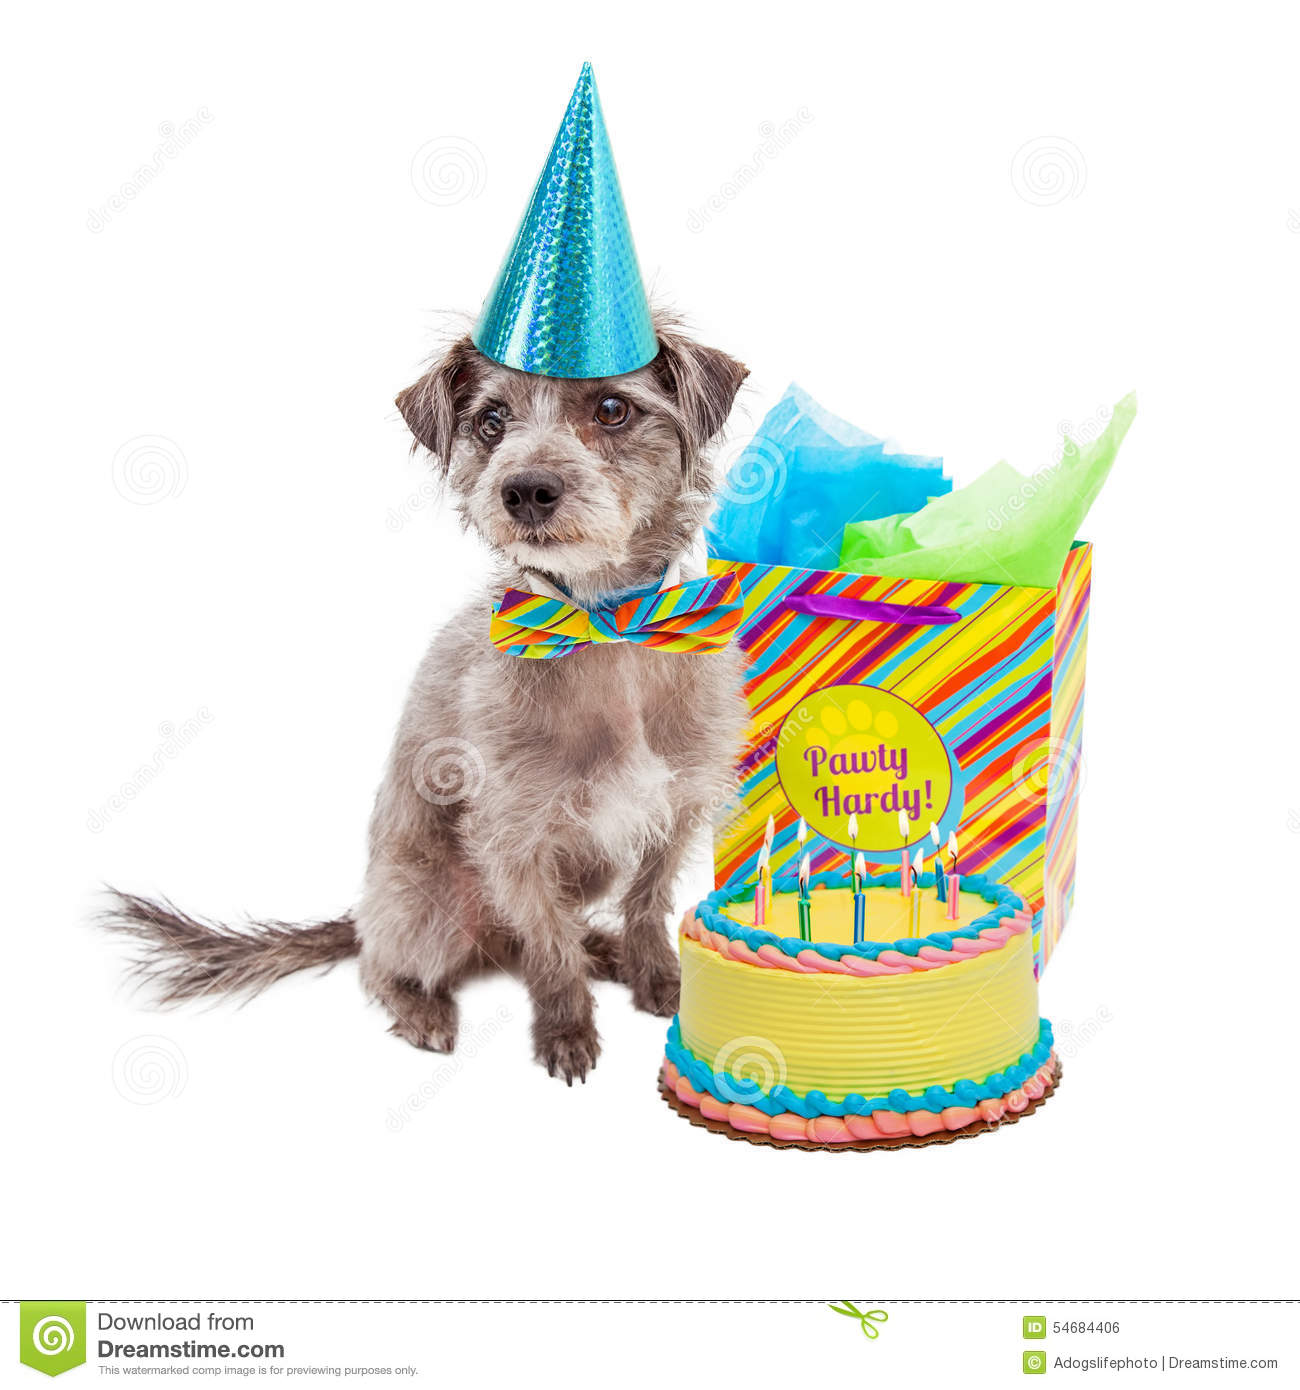 Cute Little Terrier Dog Wearing A Birthday Hat Sitting Next To Cake And Gift Bag